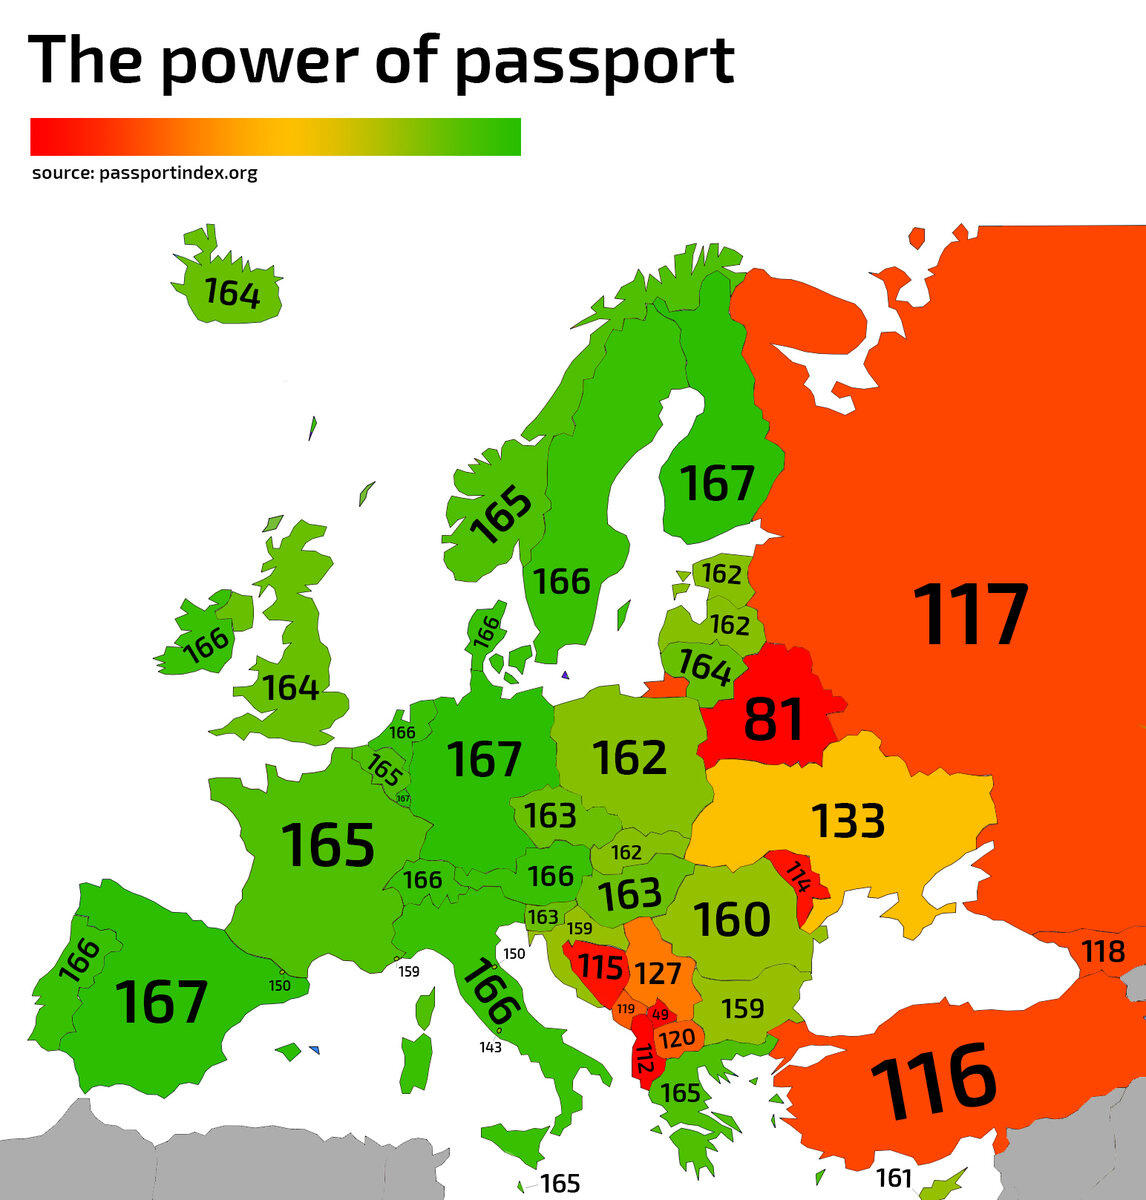 Источник:https://www.reddit.com/r/europe/comments/bncrg7/map_of_europe_with_corresponding_numbers_of/